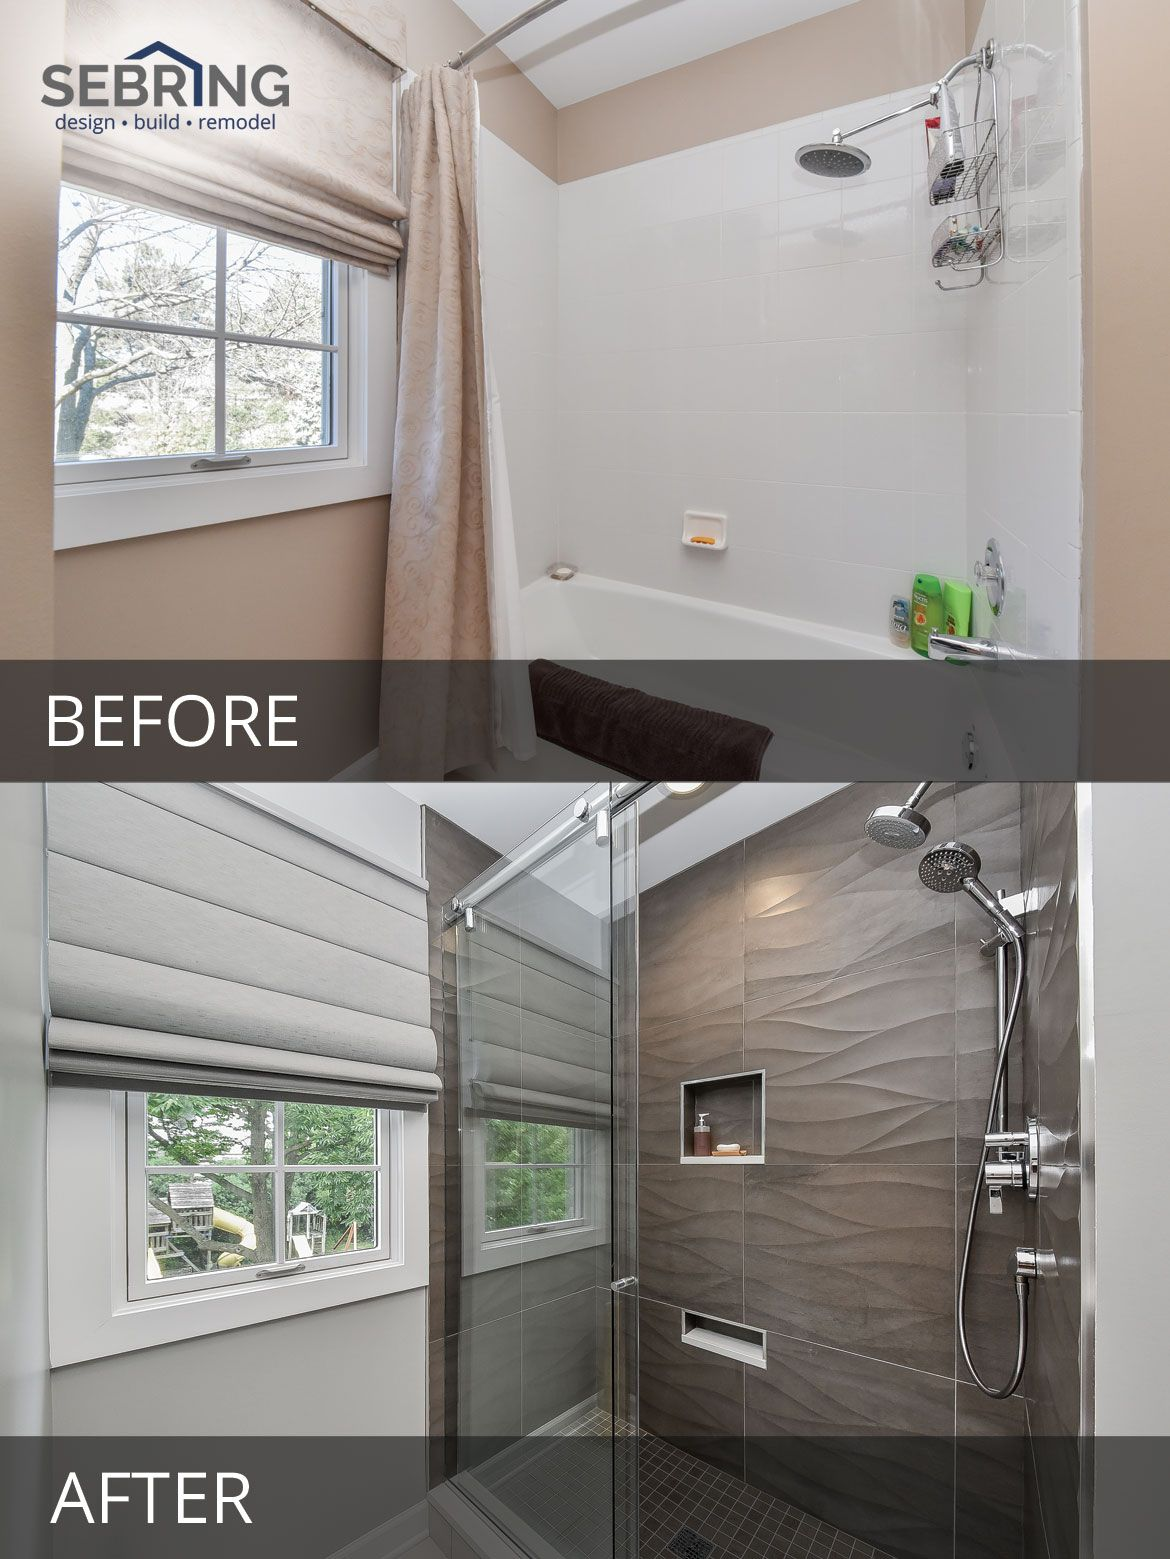 Doug Brenda S Master Bathroom Before After Pictures Budget Bathroom Remodel Small Remodel Bathroom Before After